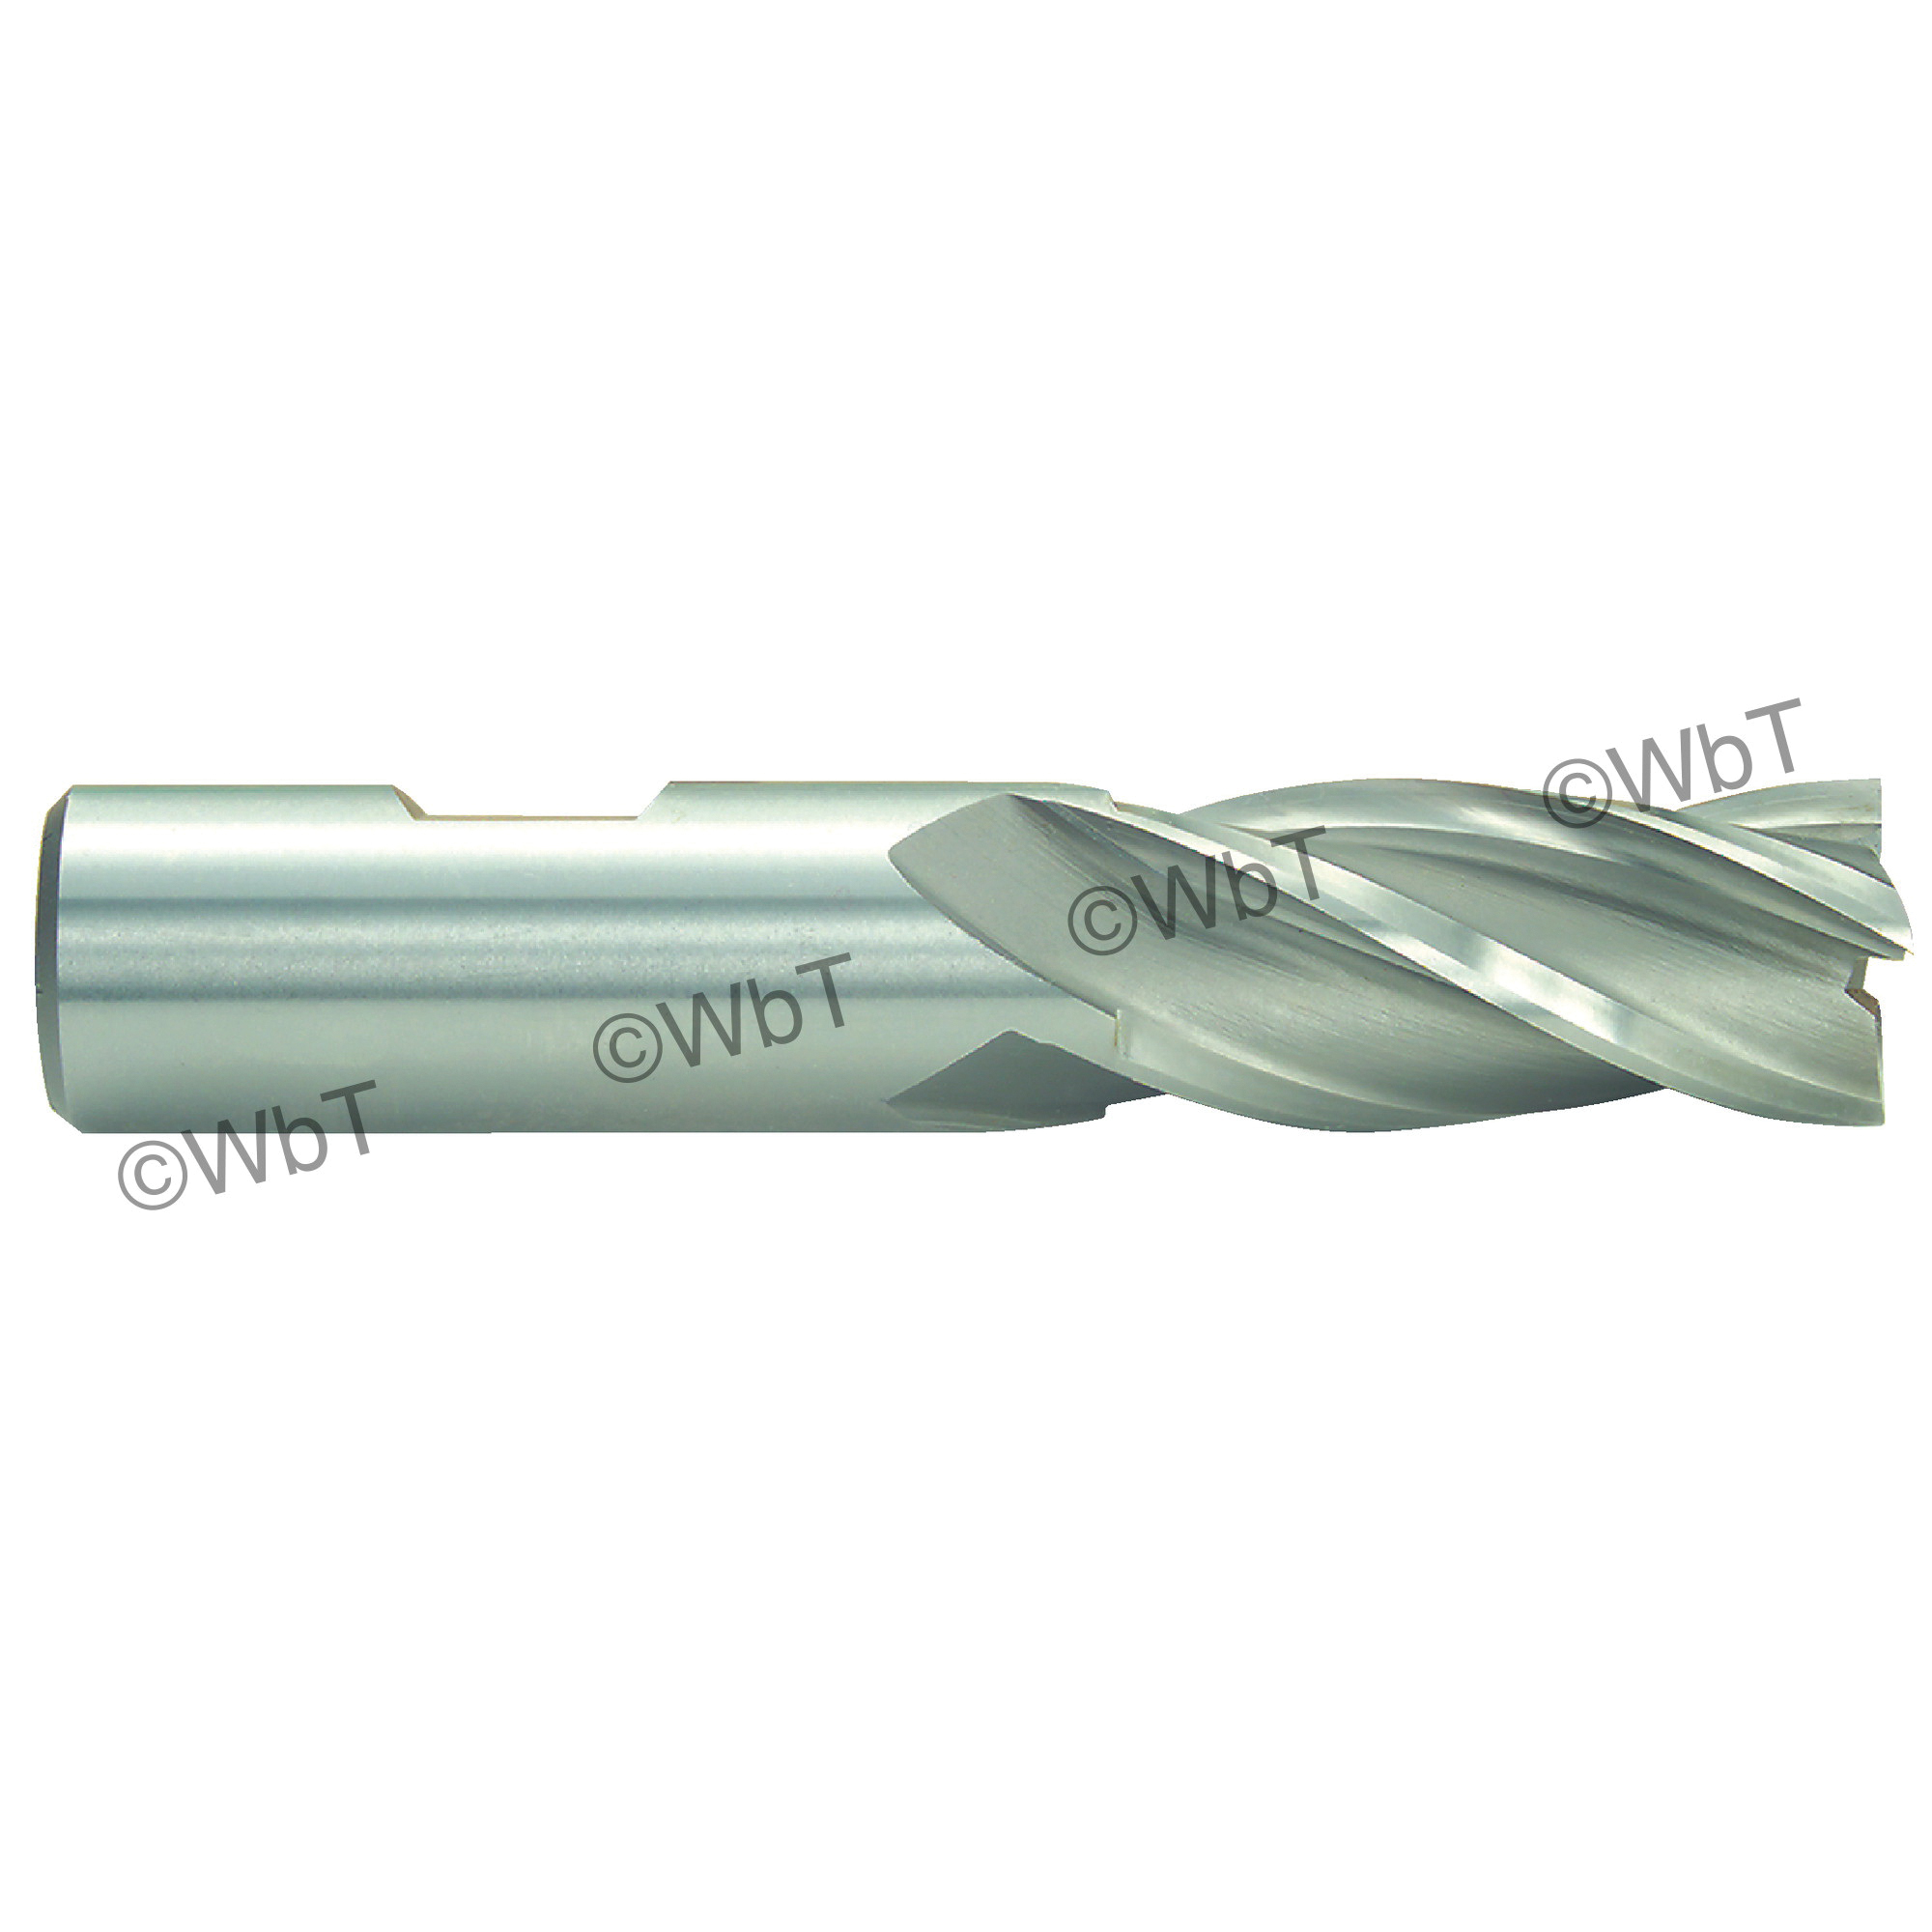 TTC 08-005-060 D2 General Purpose Non-Center Cutting Single Square End Mill, 1/4 in Dia Cutter, 5/8 in Length of Cut, 4 Flutes, 3/8 in Dia Shank, 2-7/16 in OAL, Bright